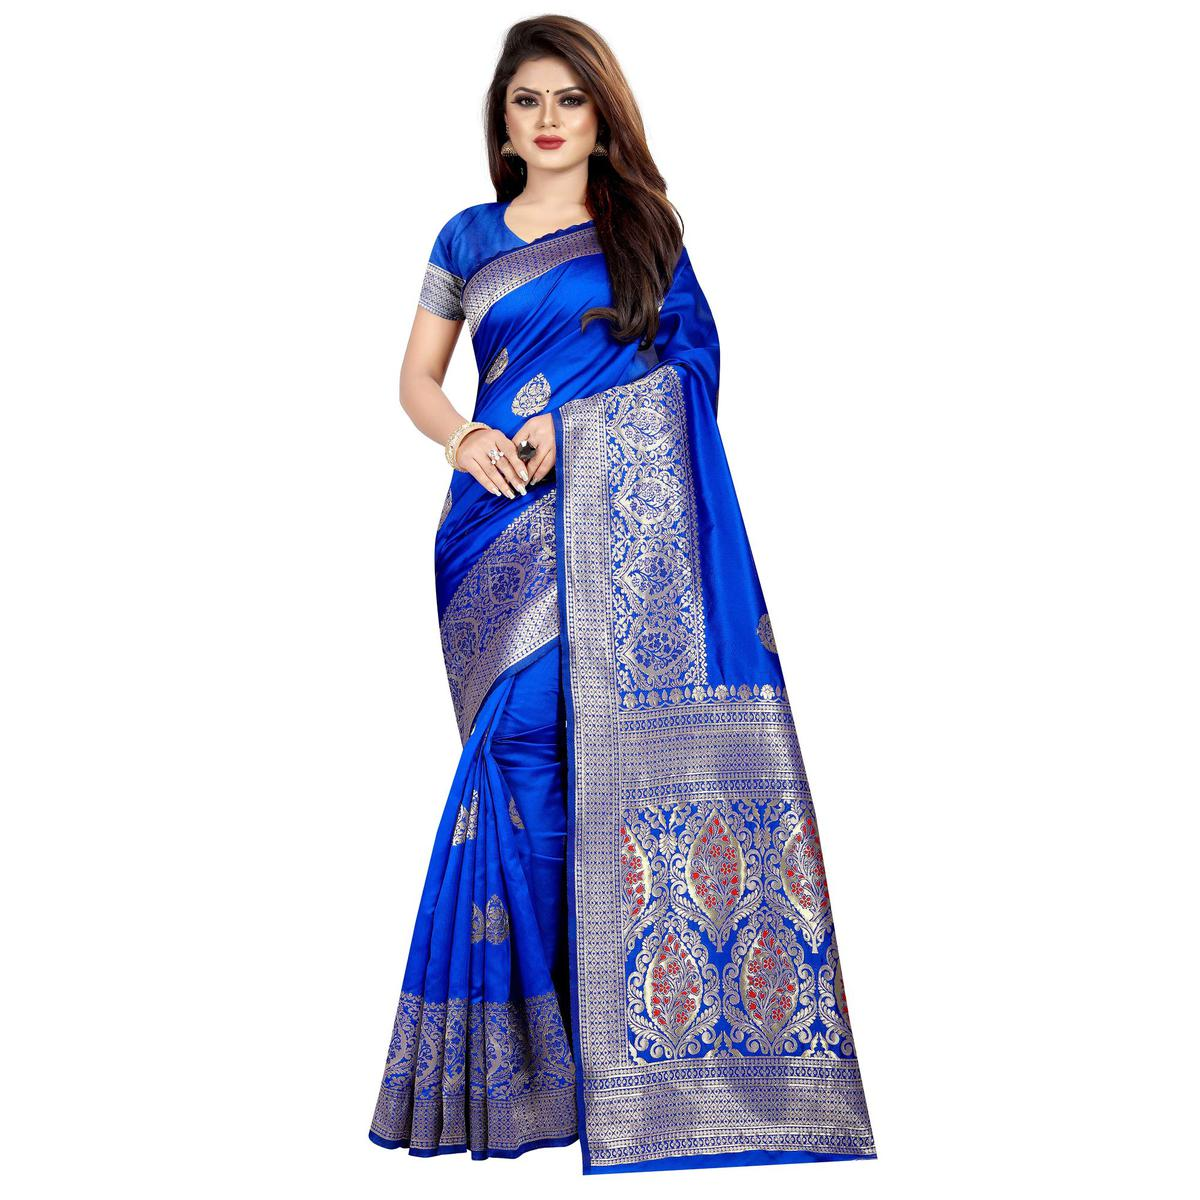 Appealing Royal Blue Colored Festive Wear Woven Art Silk With Jacquard Border Saree